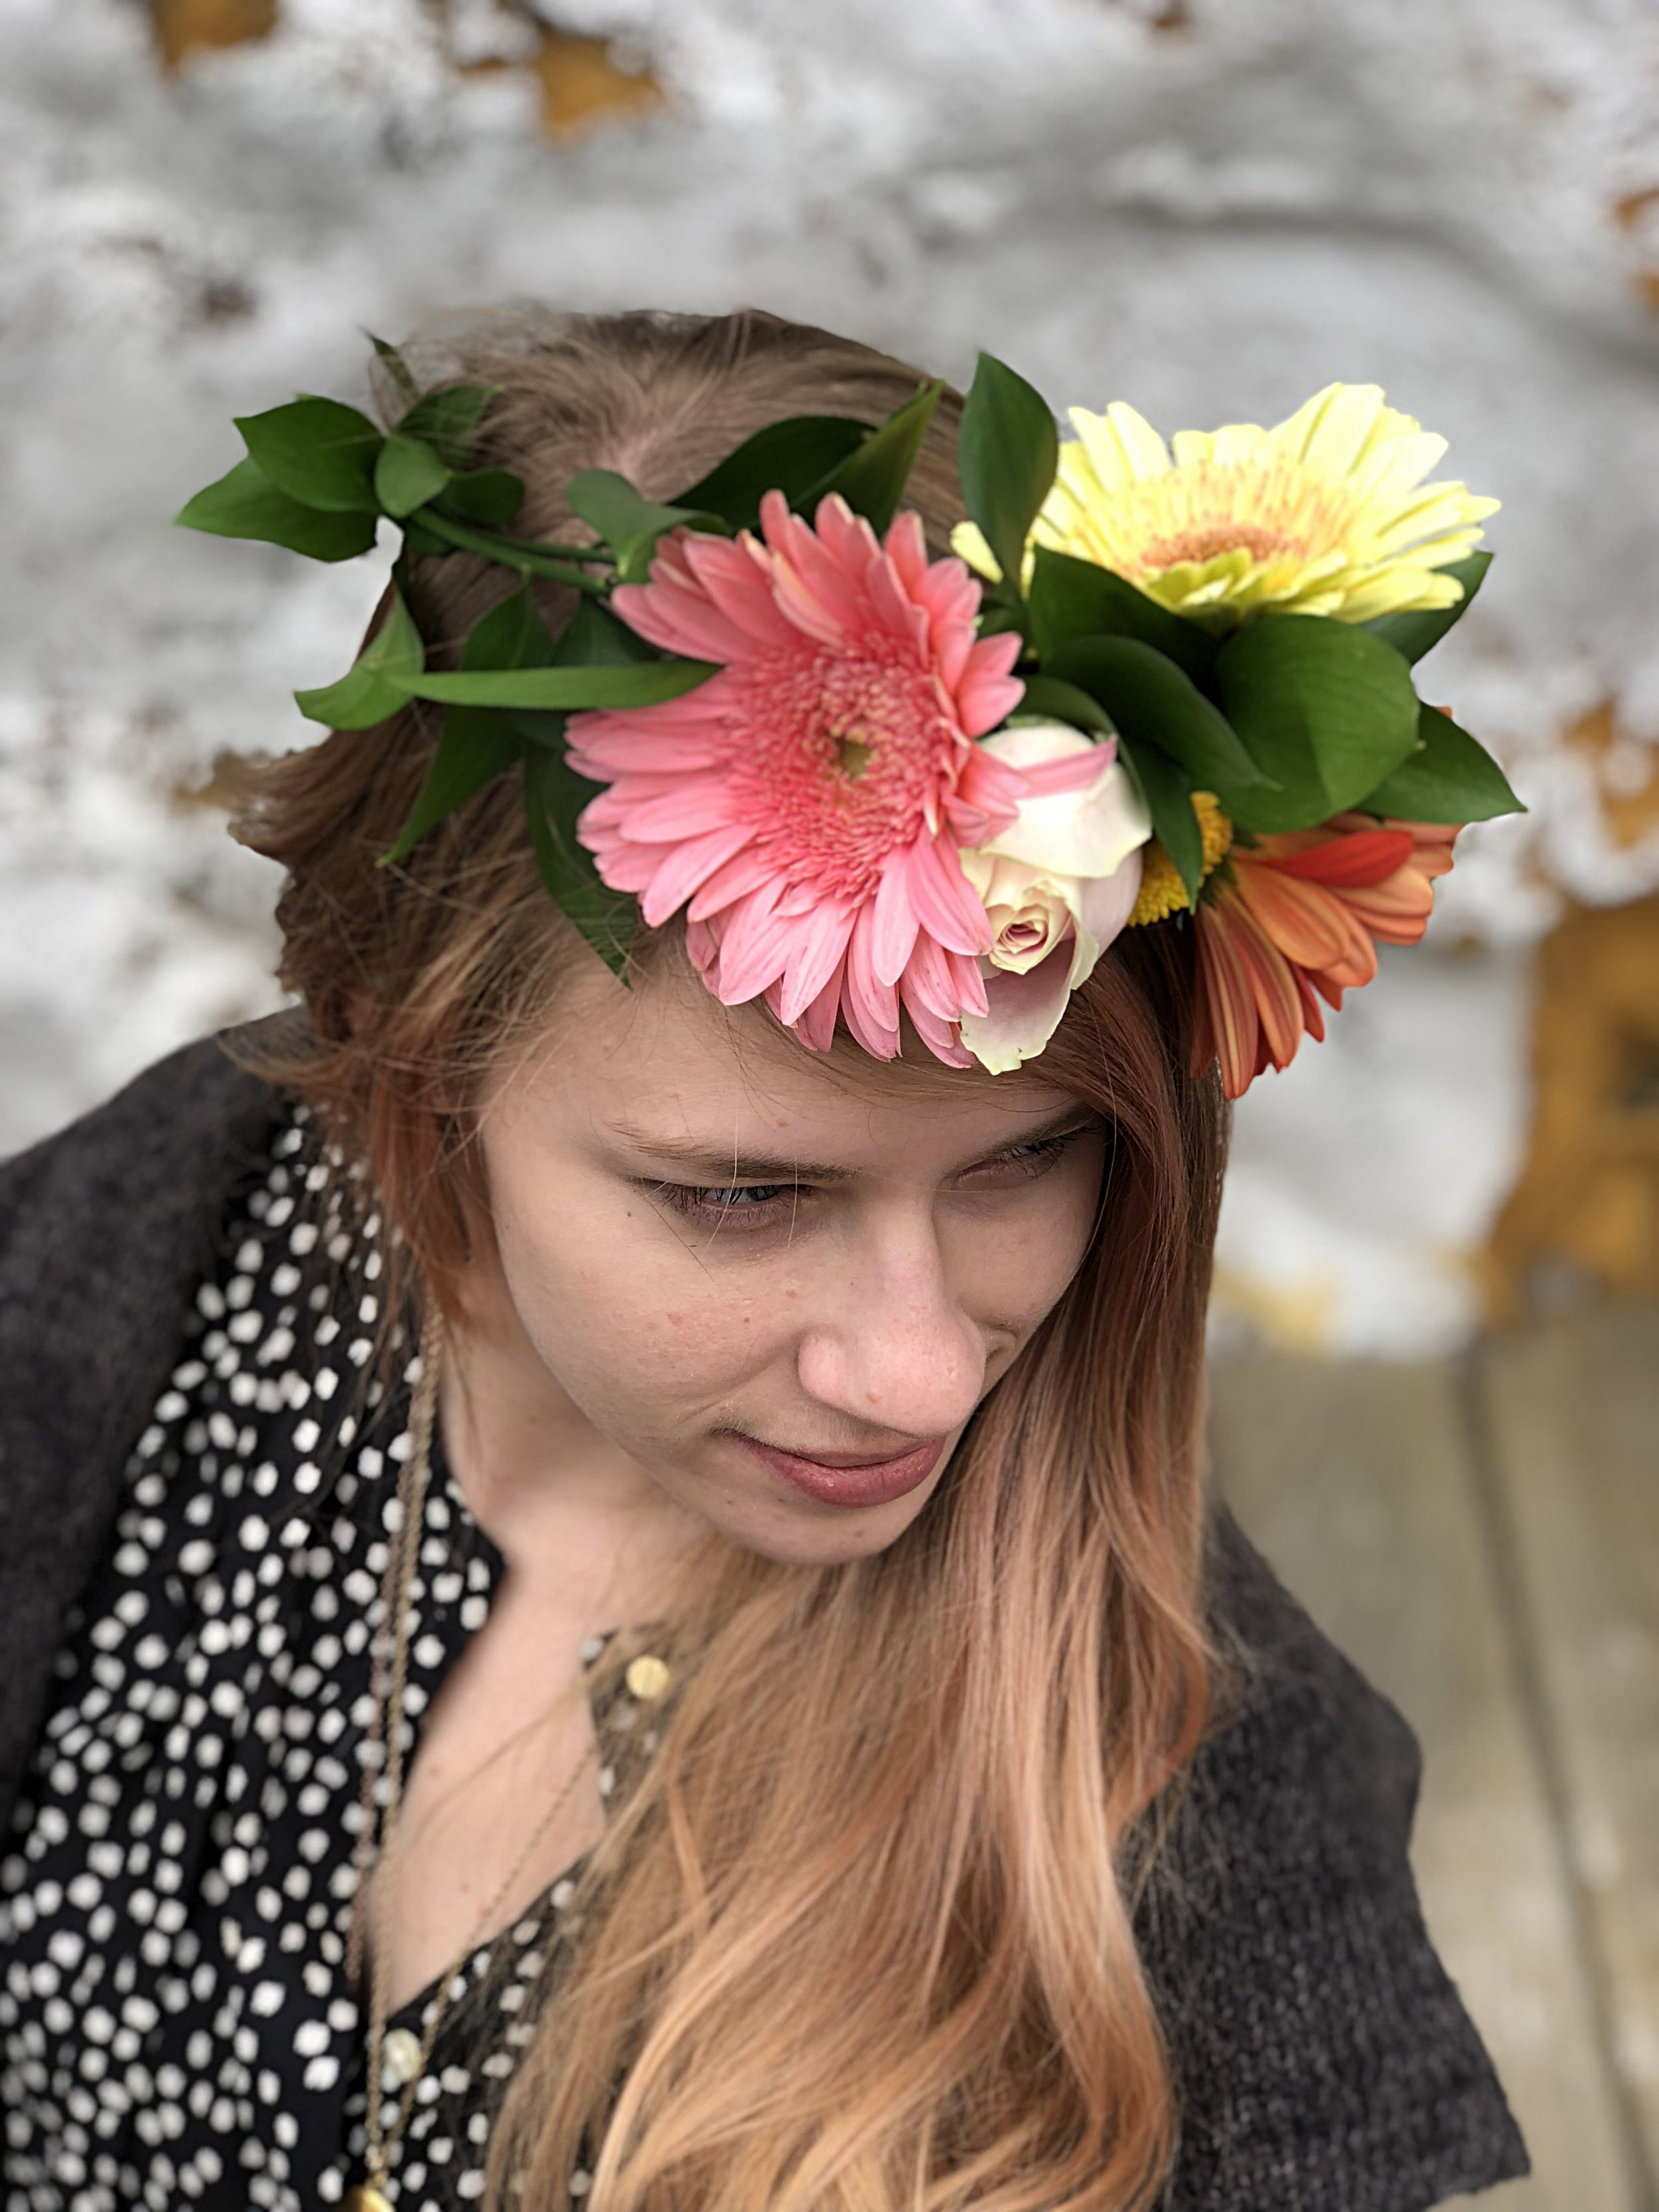 Flower Crowns - Our flower crowns ($15 small or $25 large) are perfect for any special loved one or guest. We also provide them for prom, homecoming, and other school functions. Our lovely designs bring flowers and foliage together. With your primary color palette in mind, our corsages offer a distinct look.